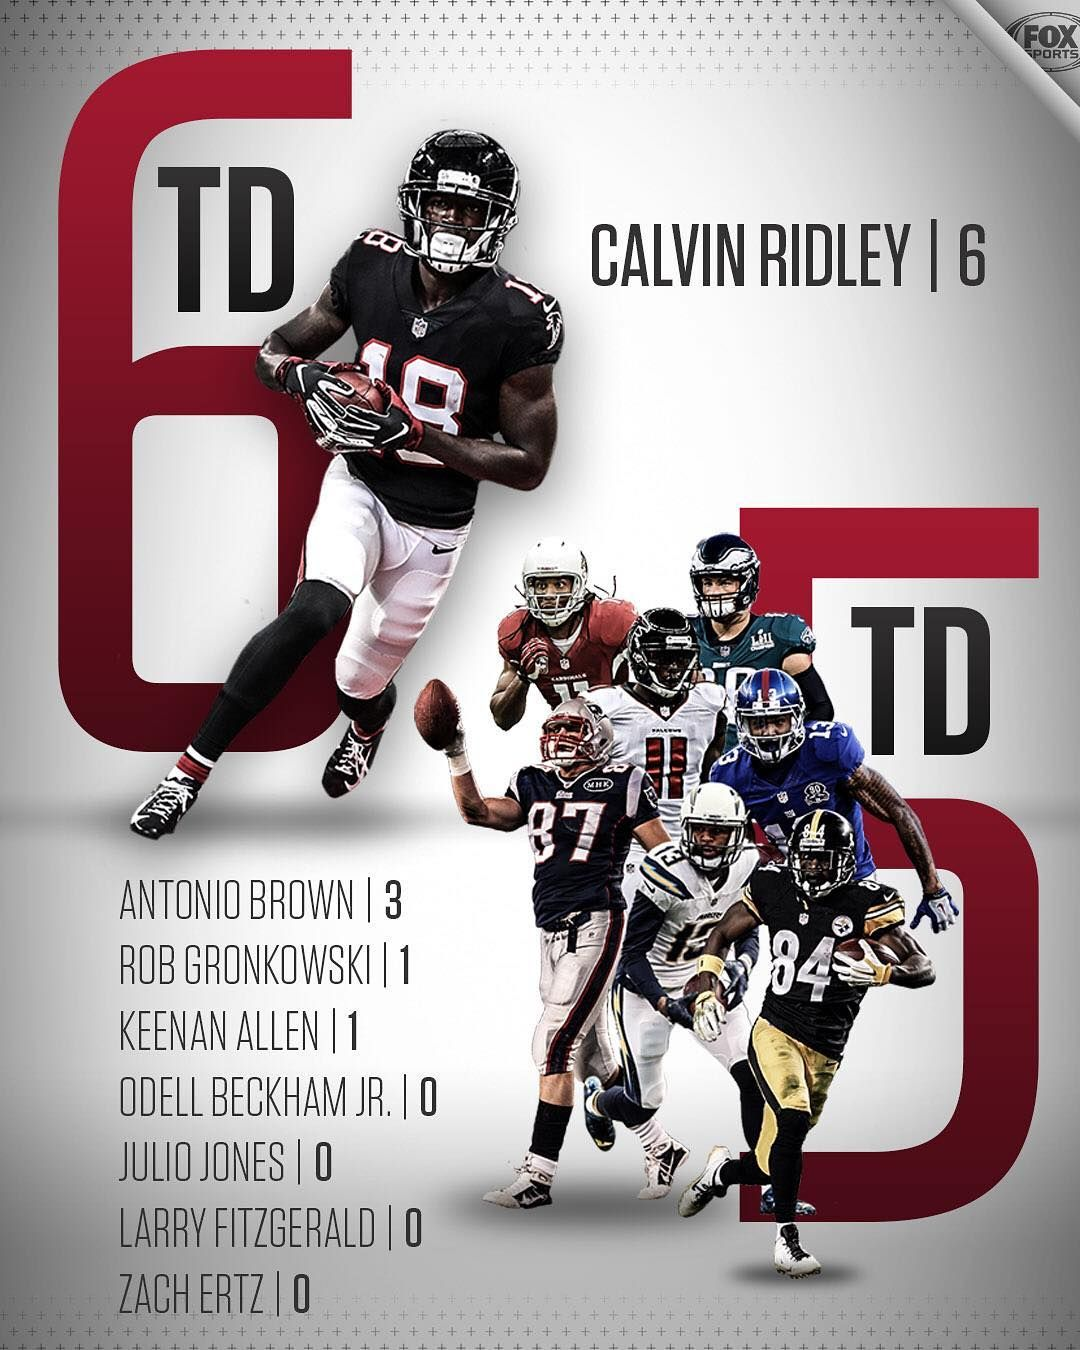 Nfl On Fox On Instagram What A Start For The Atlantafalcons Rookie Calvin Ridley Leads The League In Receiving Tds League Beckham Jr Atlanta Falcons Girl